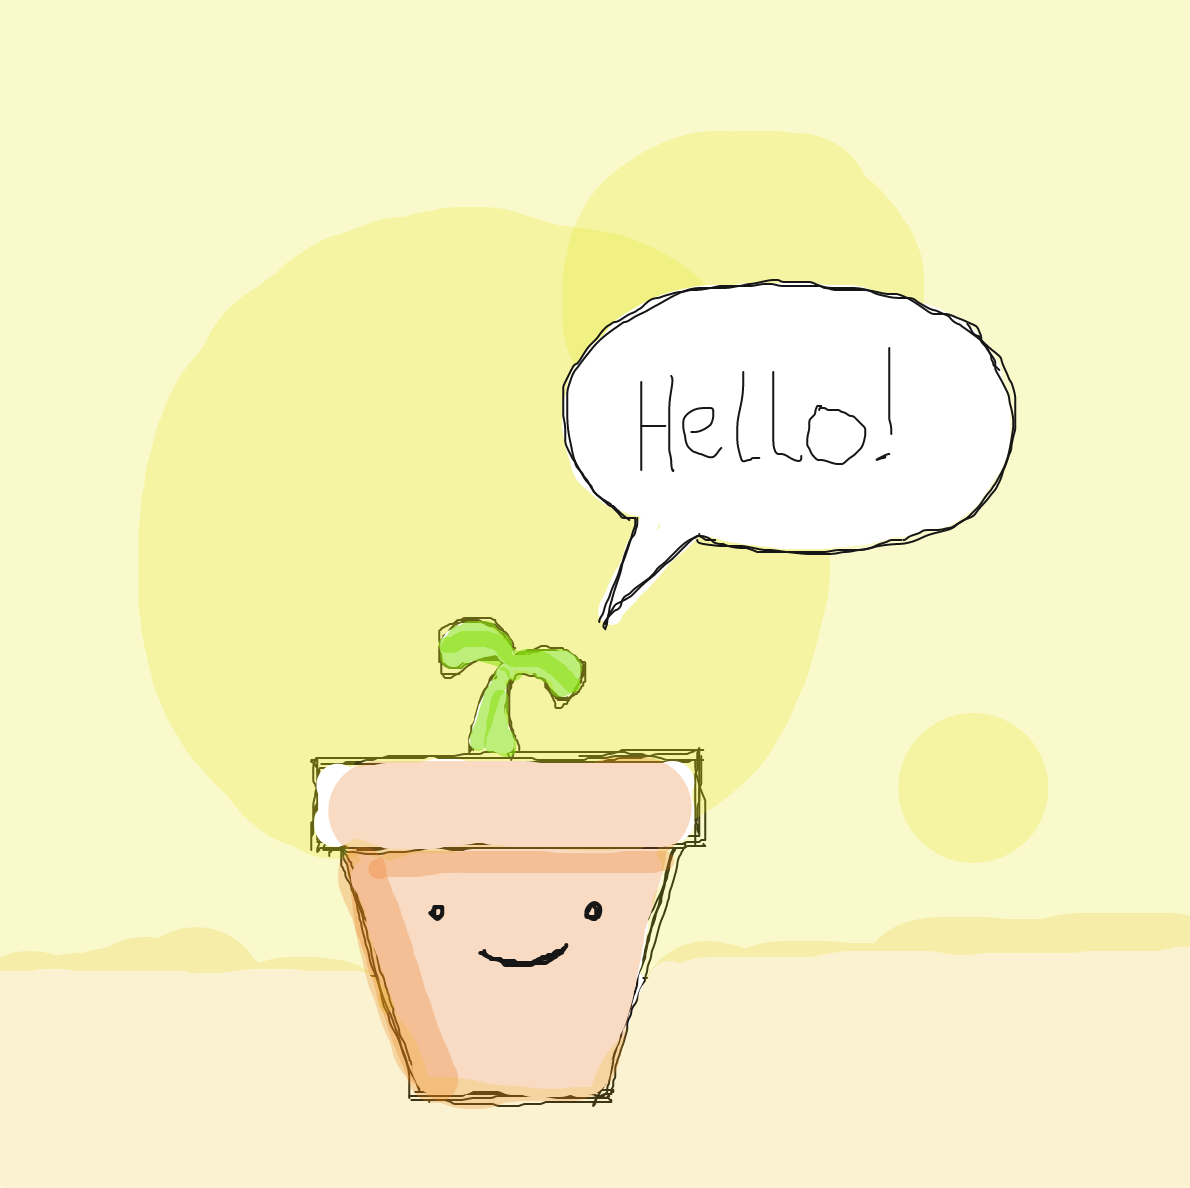 Drawing in GROWING PLANT by Miäääh!